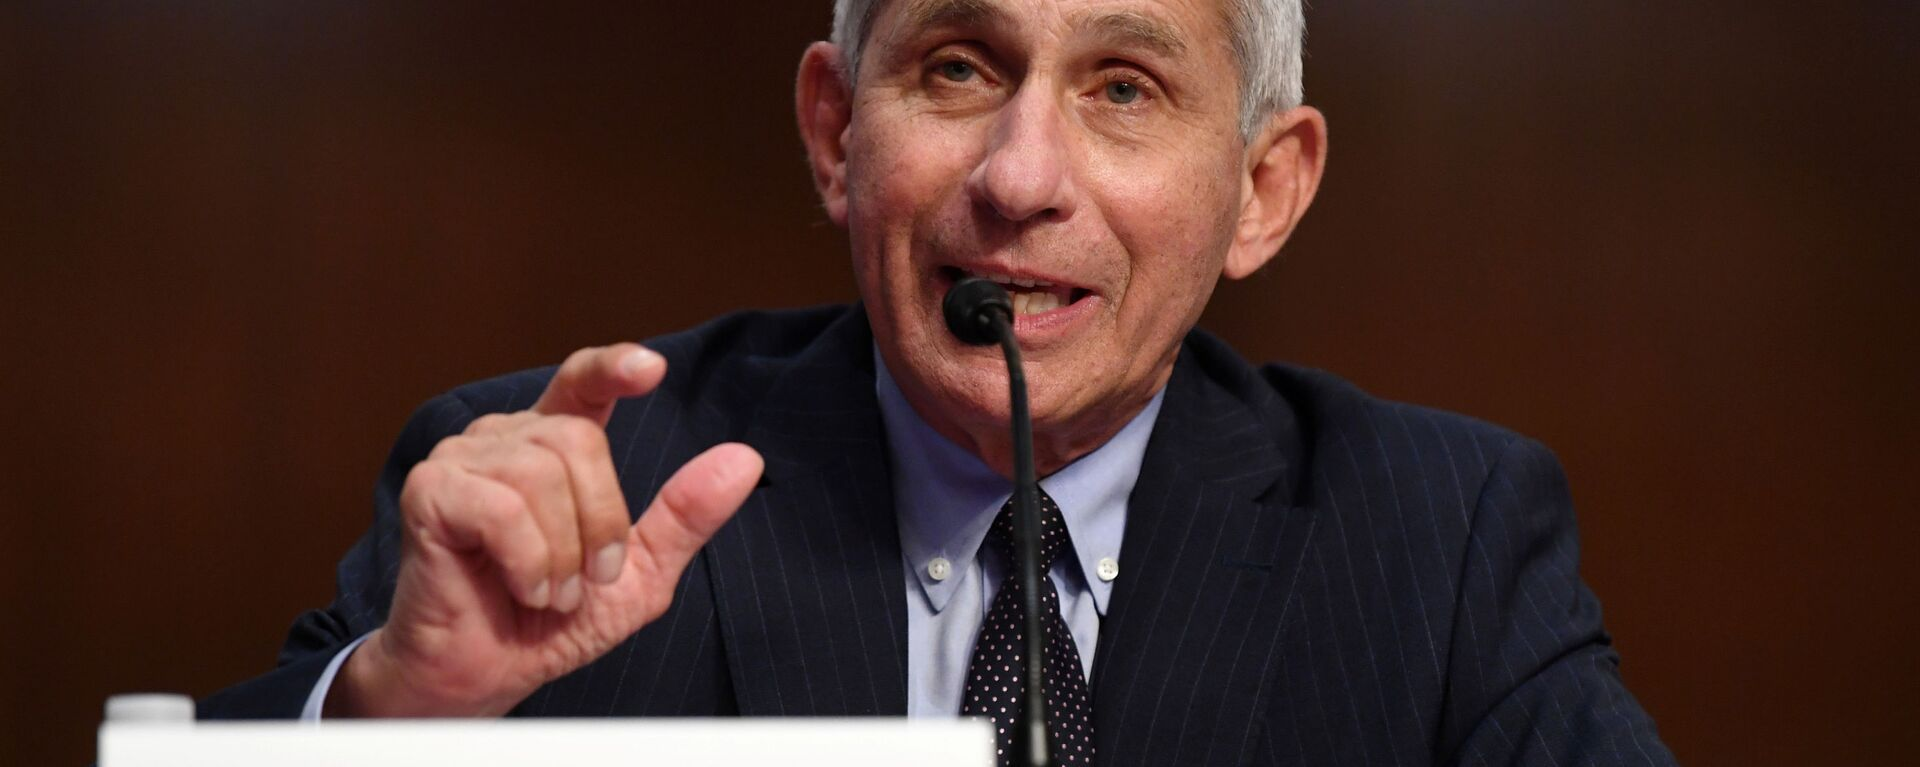 Dr Anthony Fauci, director of the National Institute for Allergy and Infectious Diseases, testifies during a Senate Health, Education, Labor and Pensions (HELP) Committee hearing on Capitol Hill in Washington, U.S., June 30, 2020. - Sputnik Italia, 1920, 01.07.2020